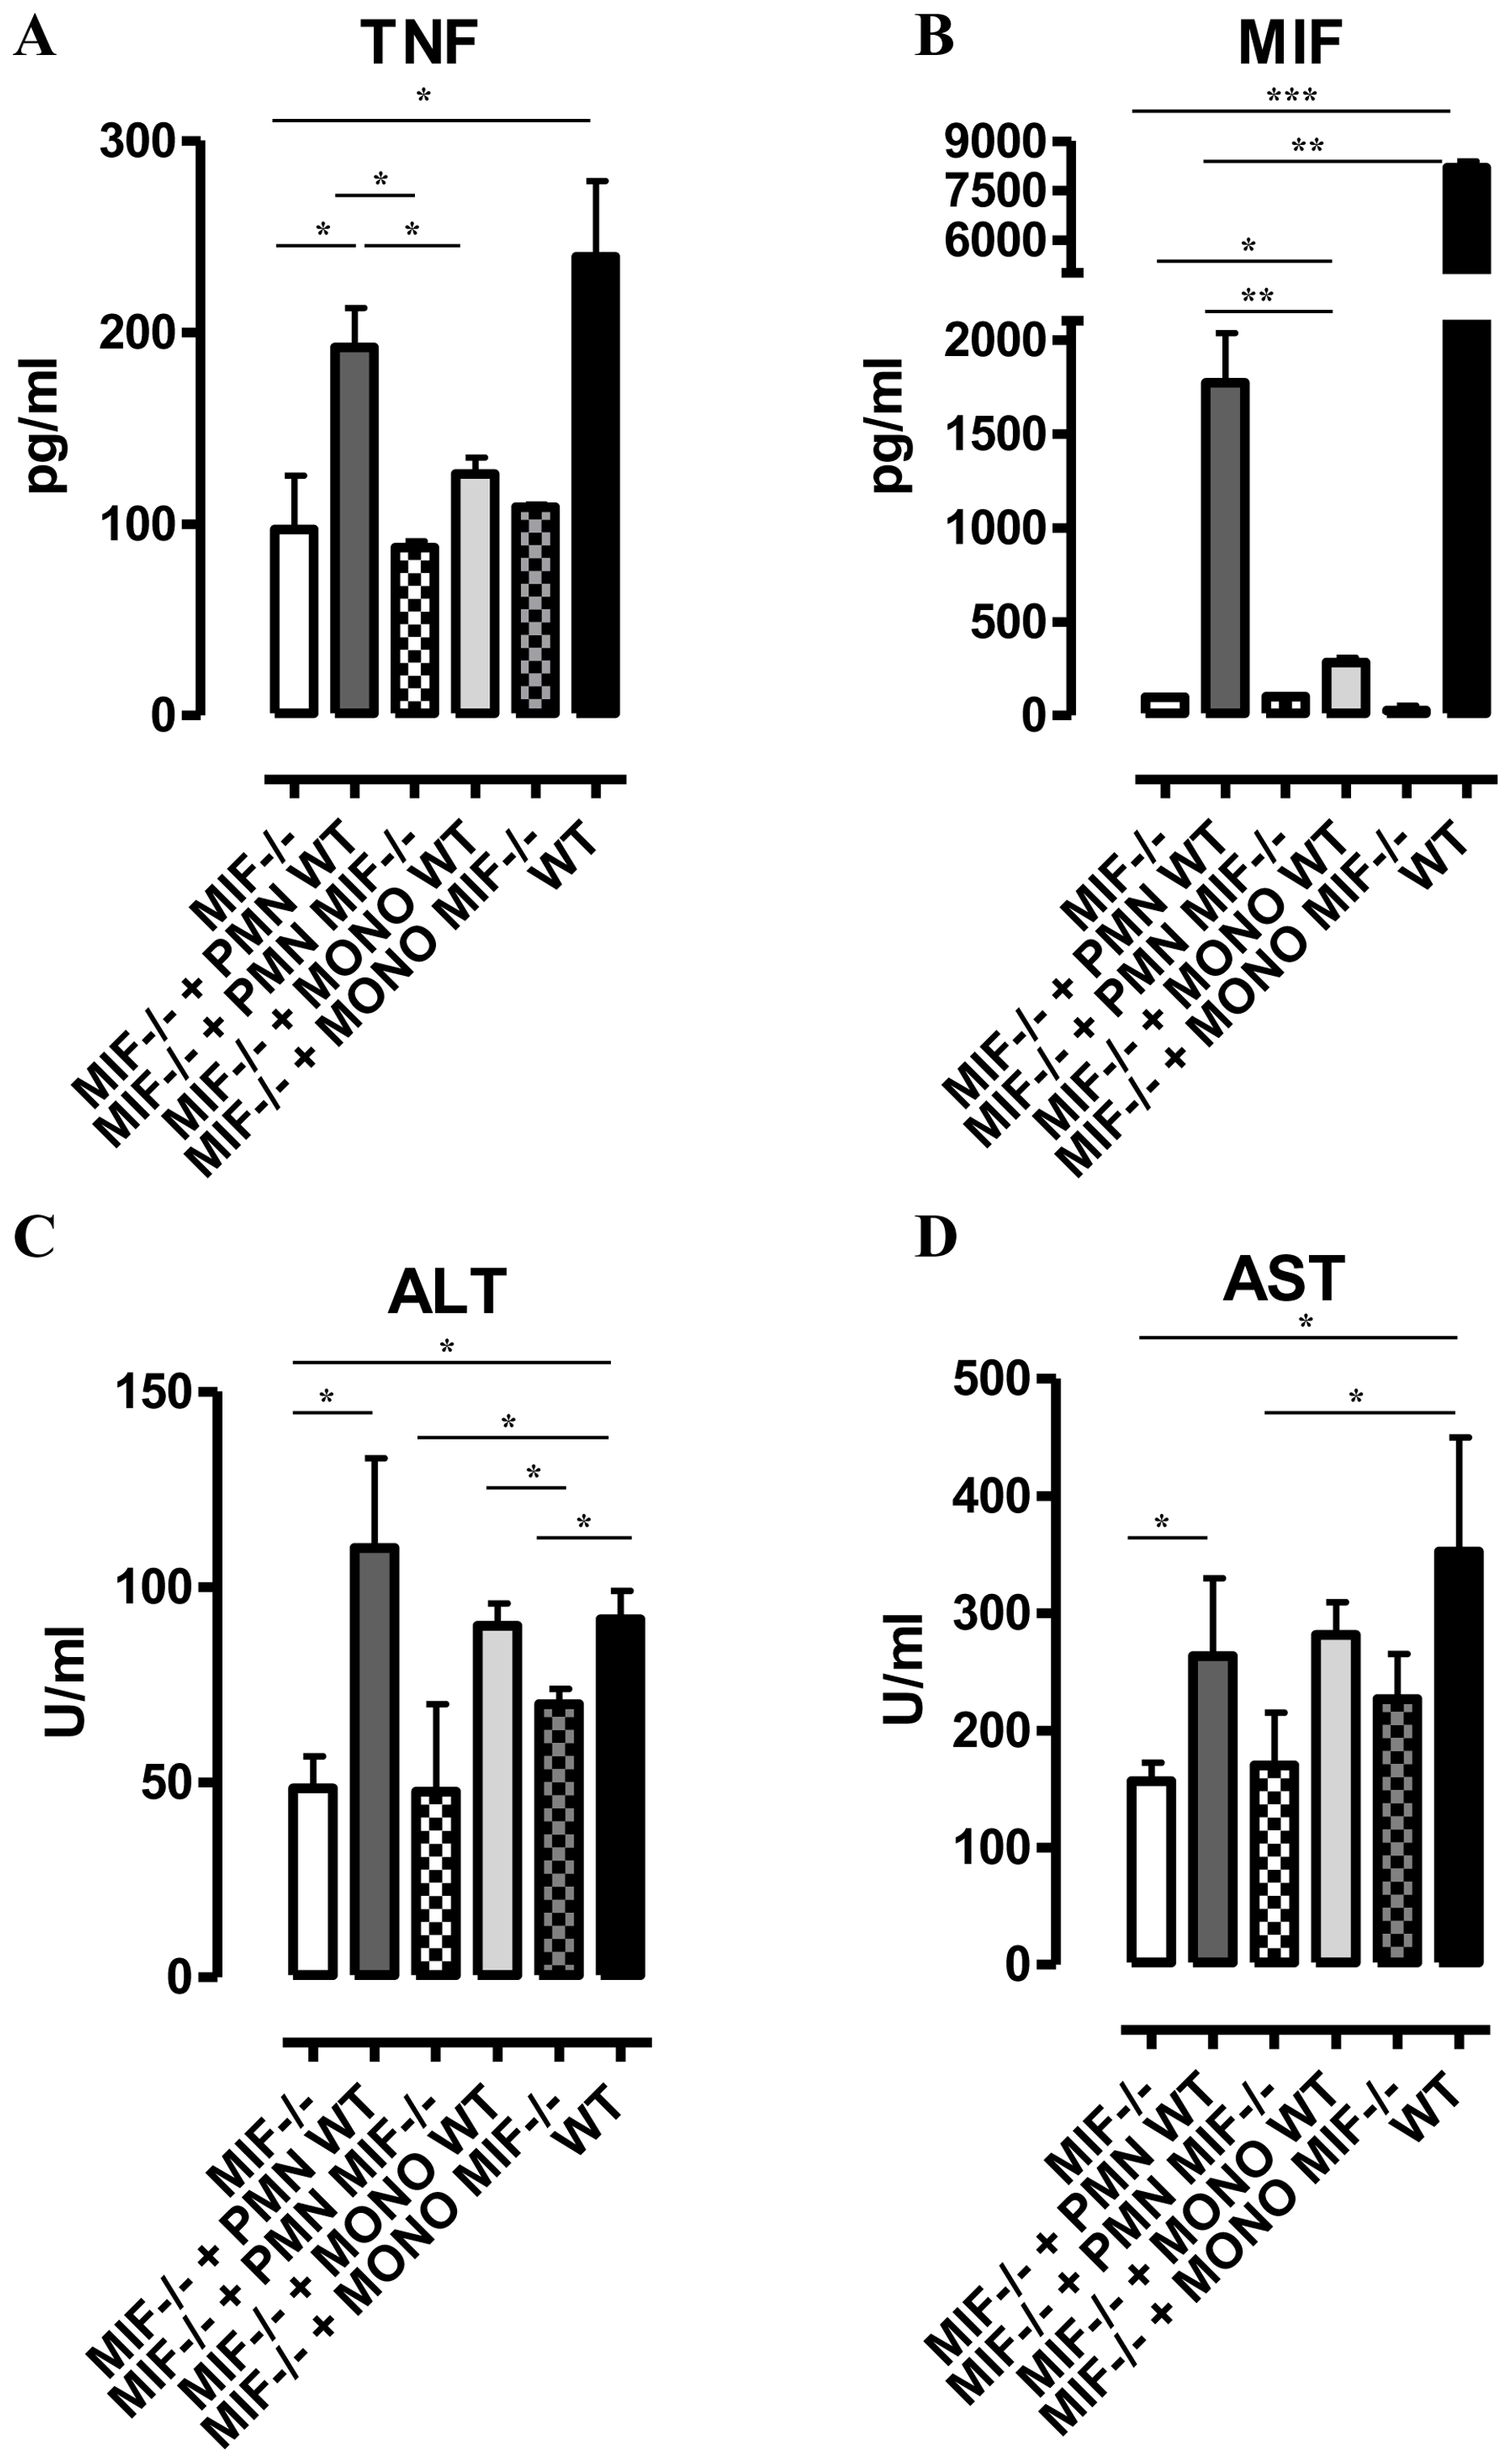 Neutrophil-derived MIF and monocyte-derived MIF contribute to different extent to TNF production and liver injury in <i>T. brucei</i> infected mice.